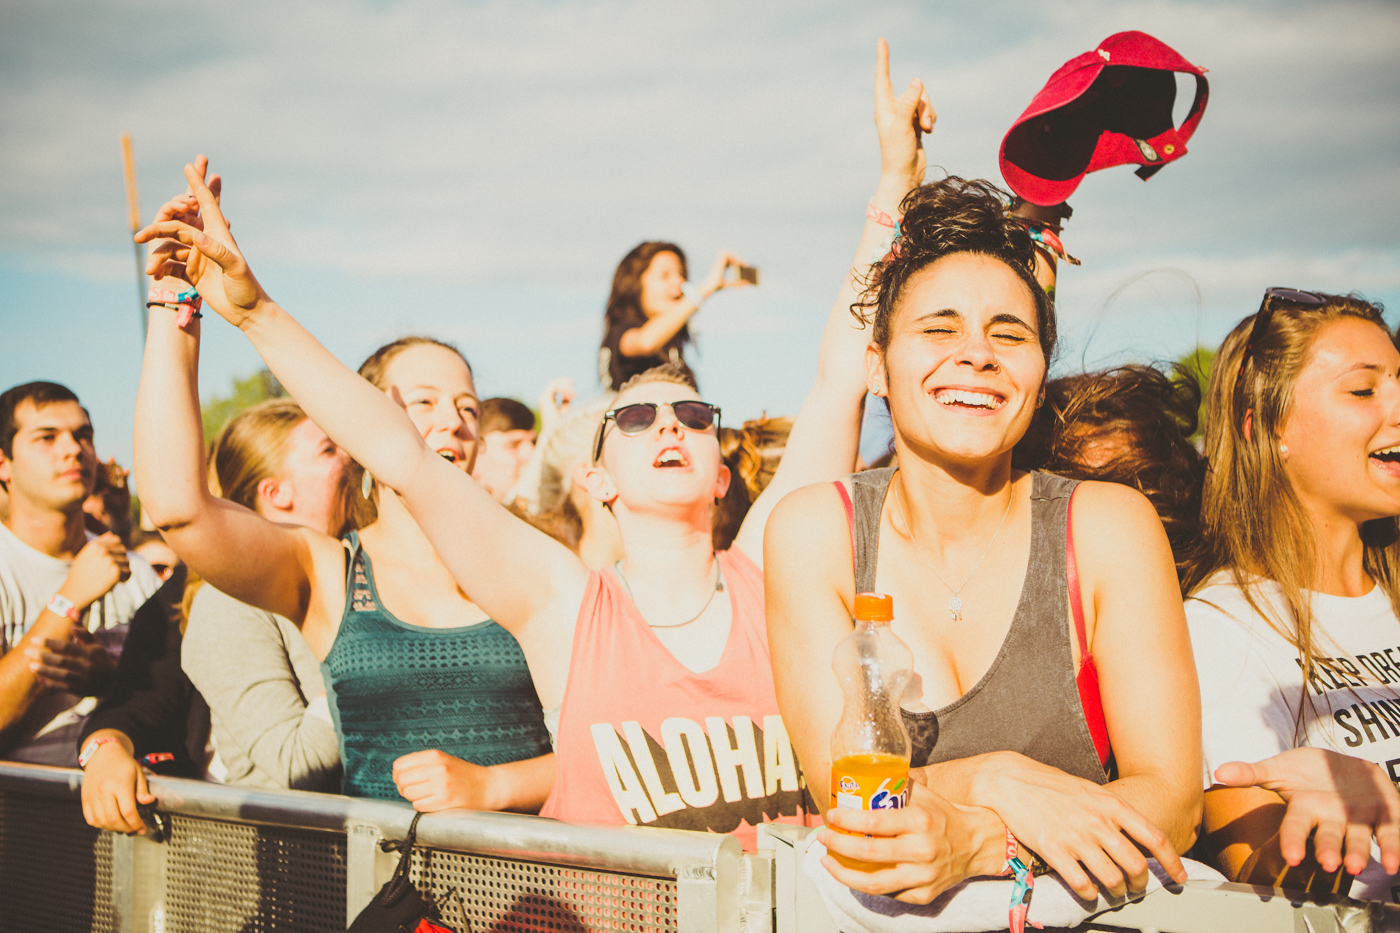 Sziget 2016, Budapest, Danubio, festival, live, concerti, peace&love, foto, gallery, Kimberley Ross, !!!, Sigur Ros, Norma Jean Martine, Unkle, Manu Chao, Muse, The Chemical Brothers,